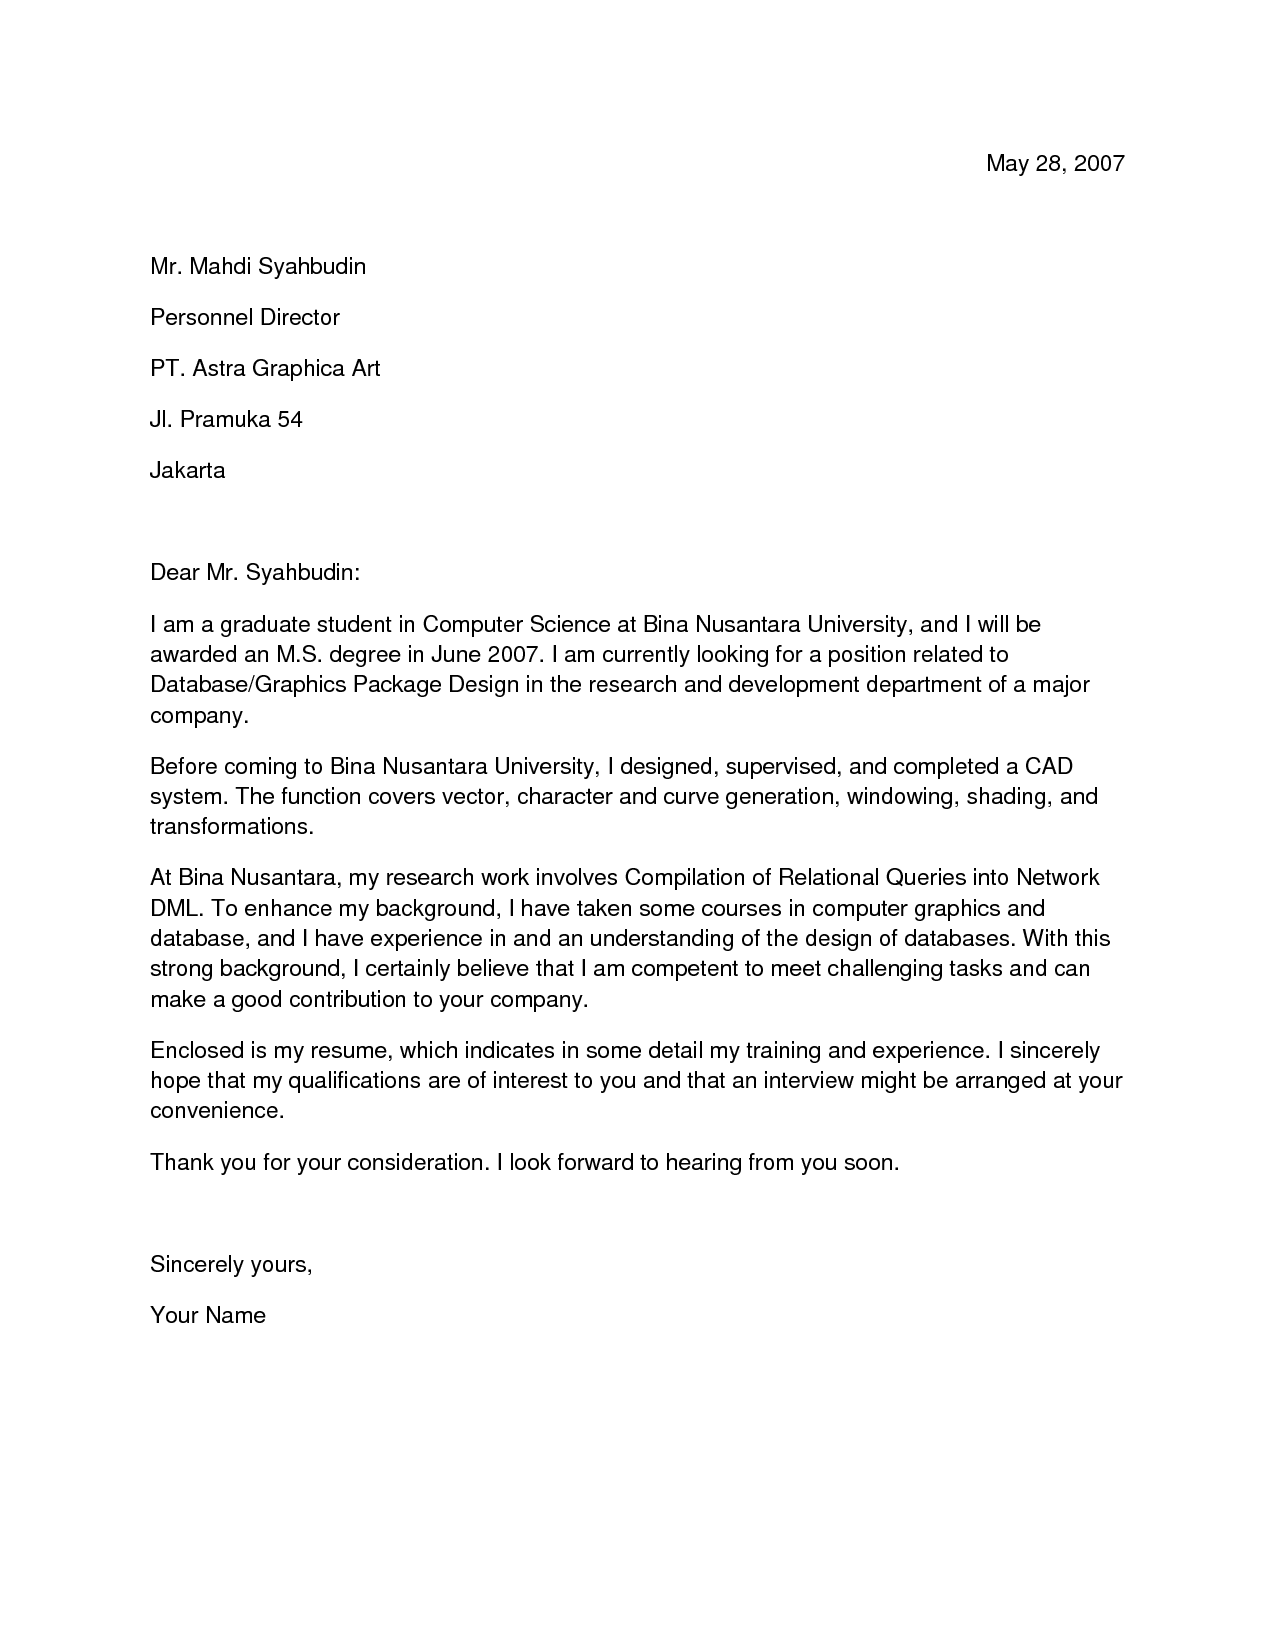 for computer science majors sales computer science computer cover letter examples computer science